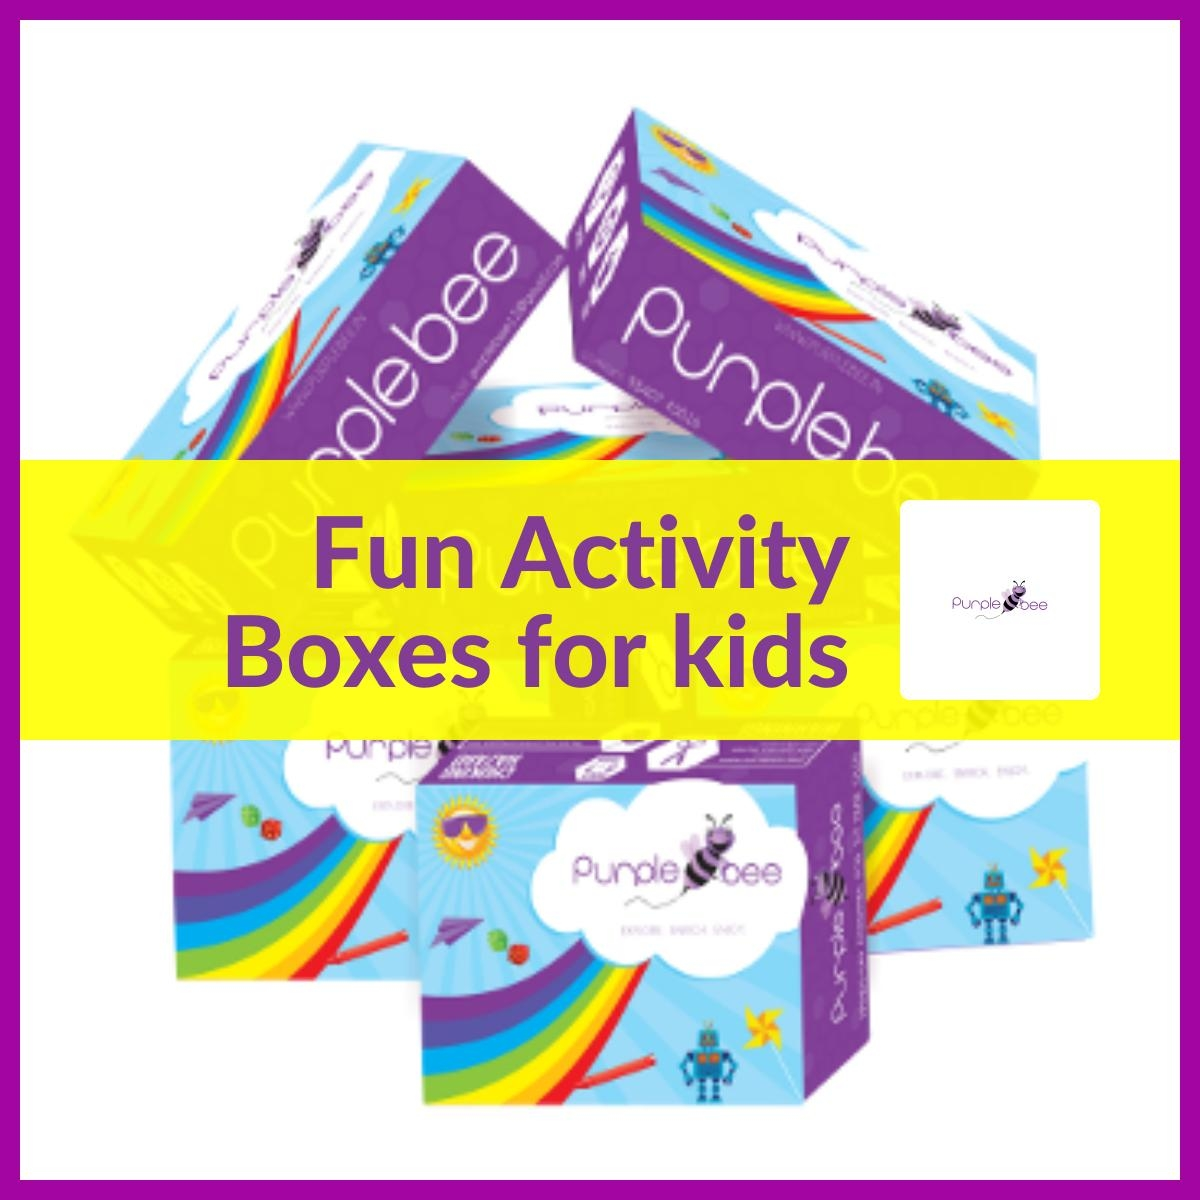 Fun activity boxes for kids